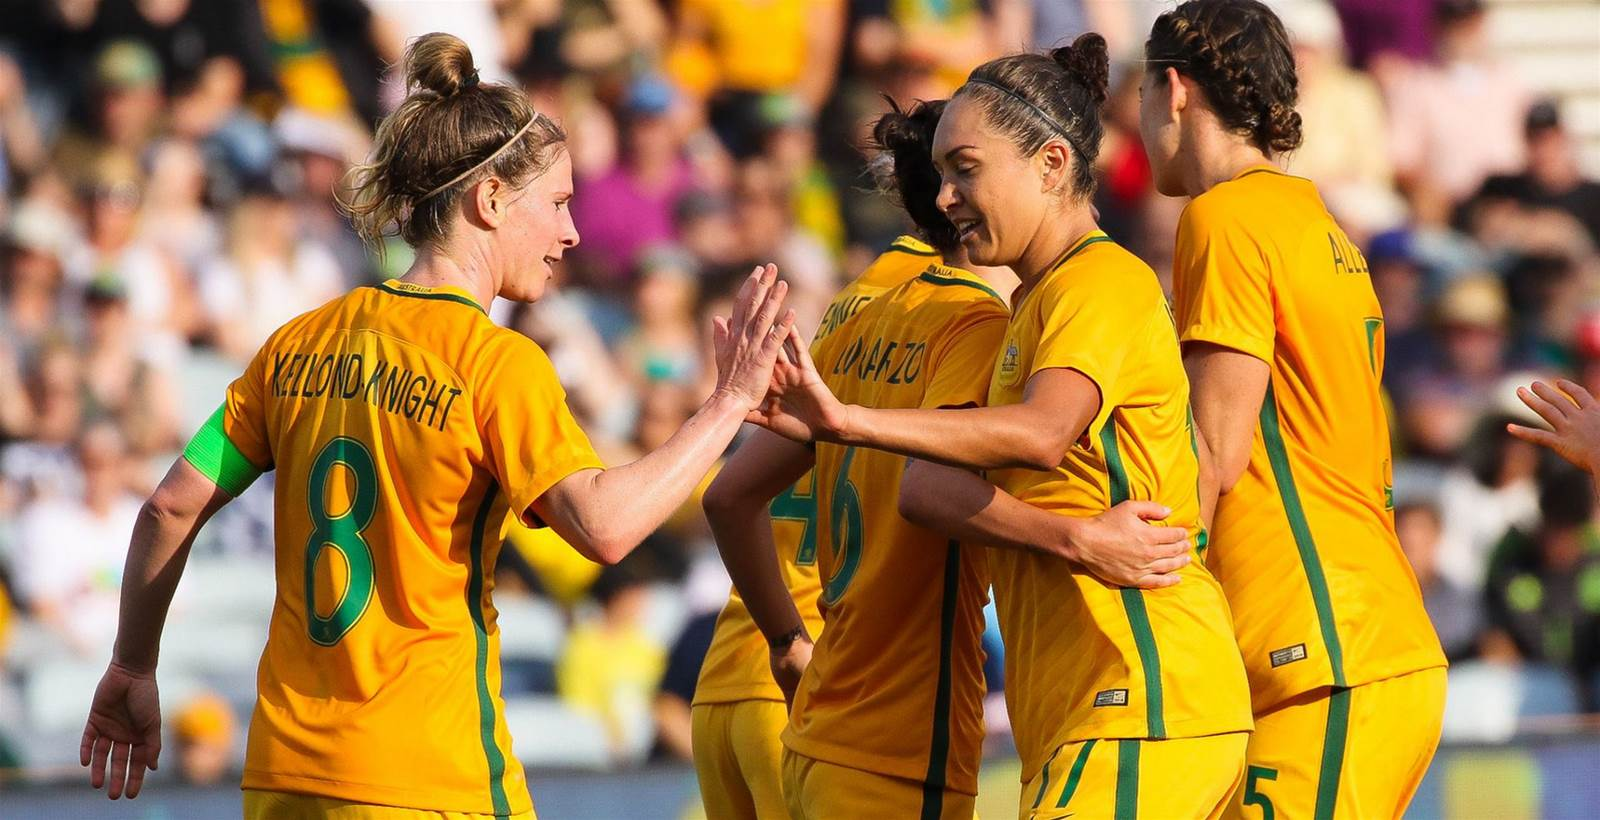 Matildas rise to all time high in FIFA rankings